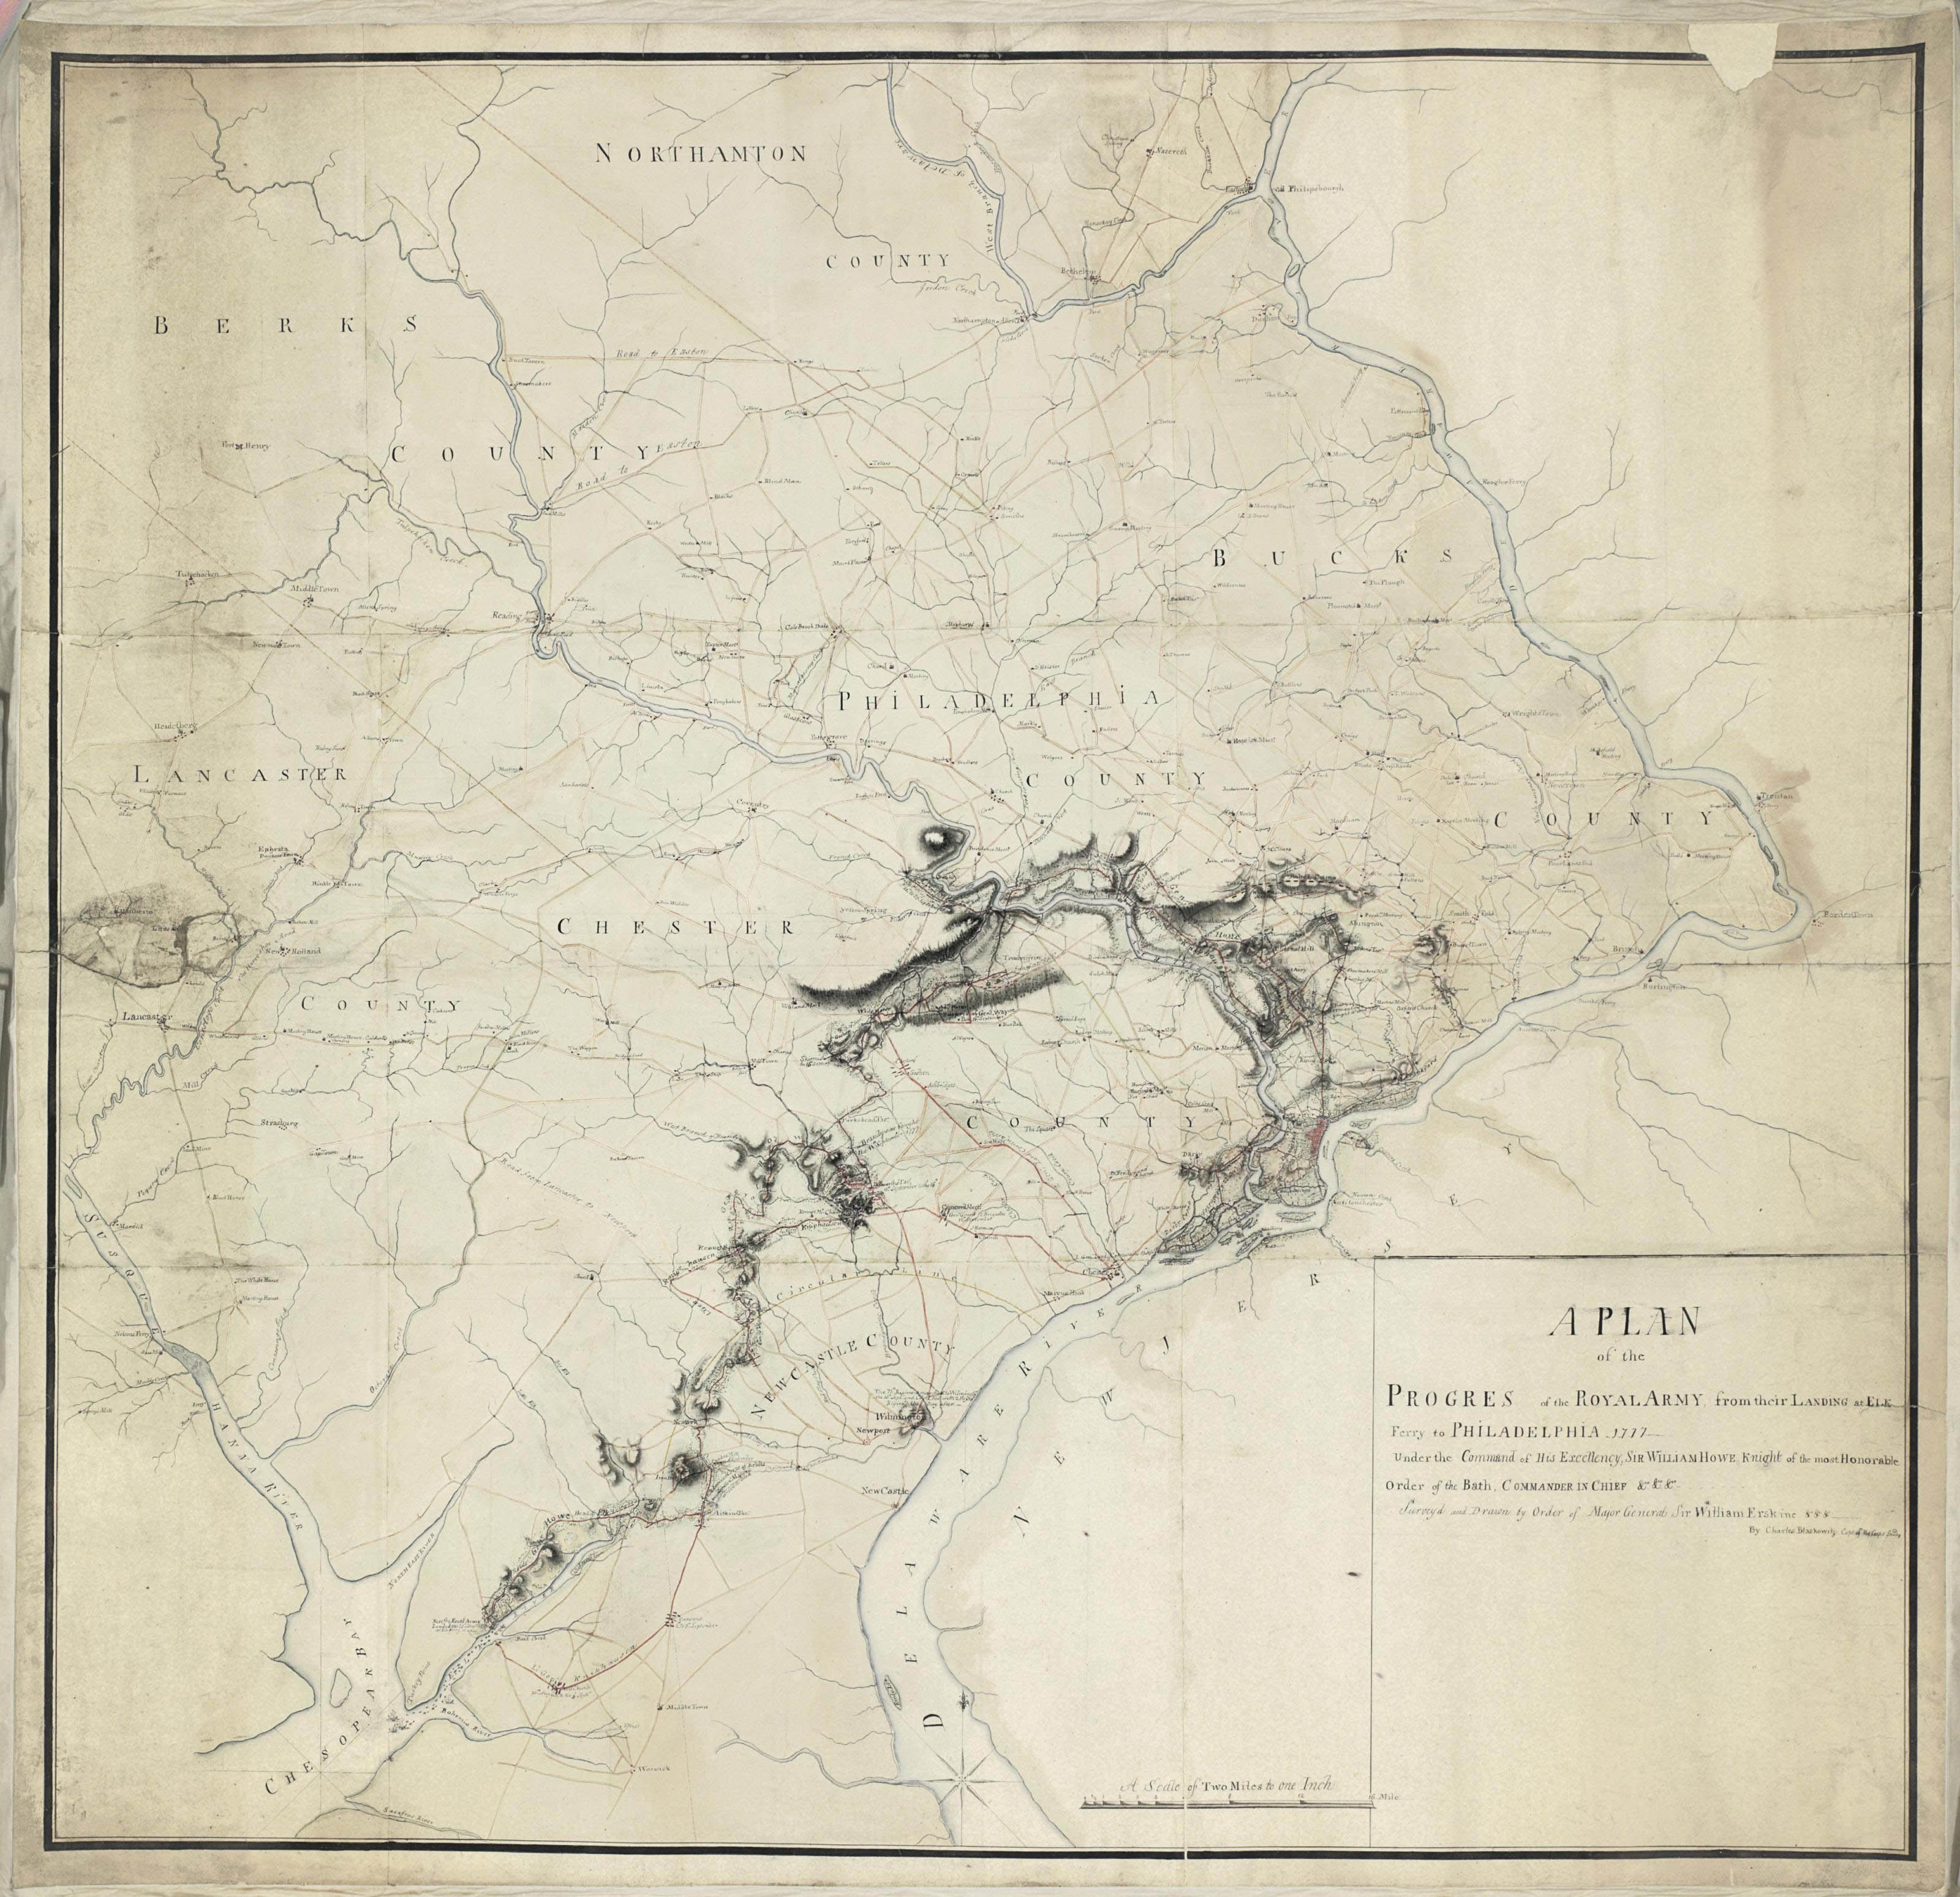 """[REVOLUTIONARY WAR]. BLASKOWITZ, Charles (c.1743-1823), """"A Plan of the Progres of the Royal Army from their Landing at Elk Ferry to Philadelphia 1777 Under the Command of His Excellency, Sir William Howe Knight of the most Honorable Order of the Bath, Commander in Chief &ca &ca &ca Surveyed and Drawn by Order of Major General Sir William Erskine By Charles Blaskowitz Capt of the Corps Guides"""". [Philadelphia, 1778]."""